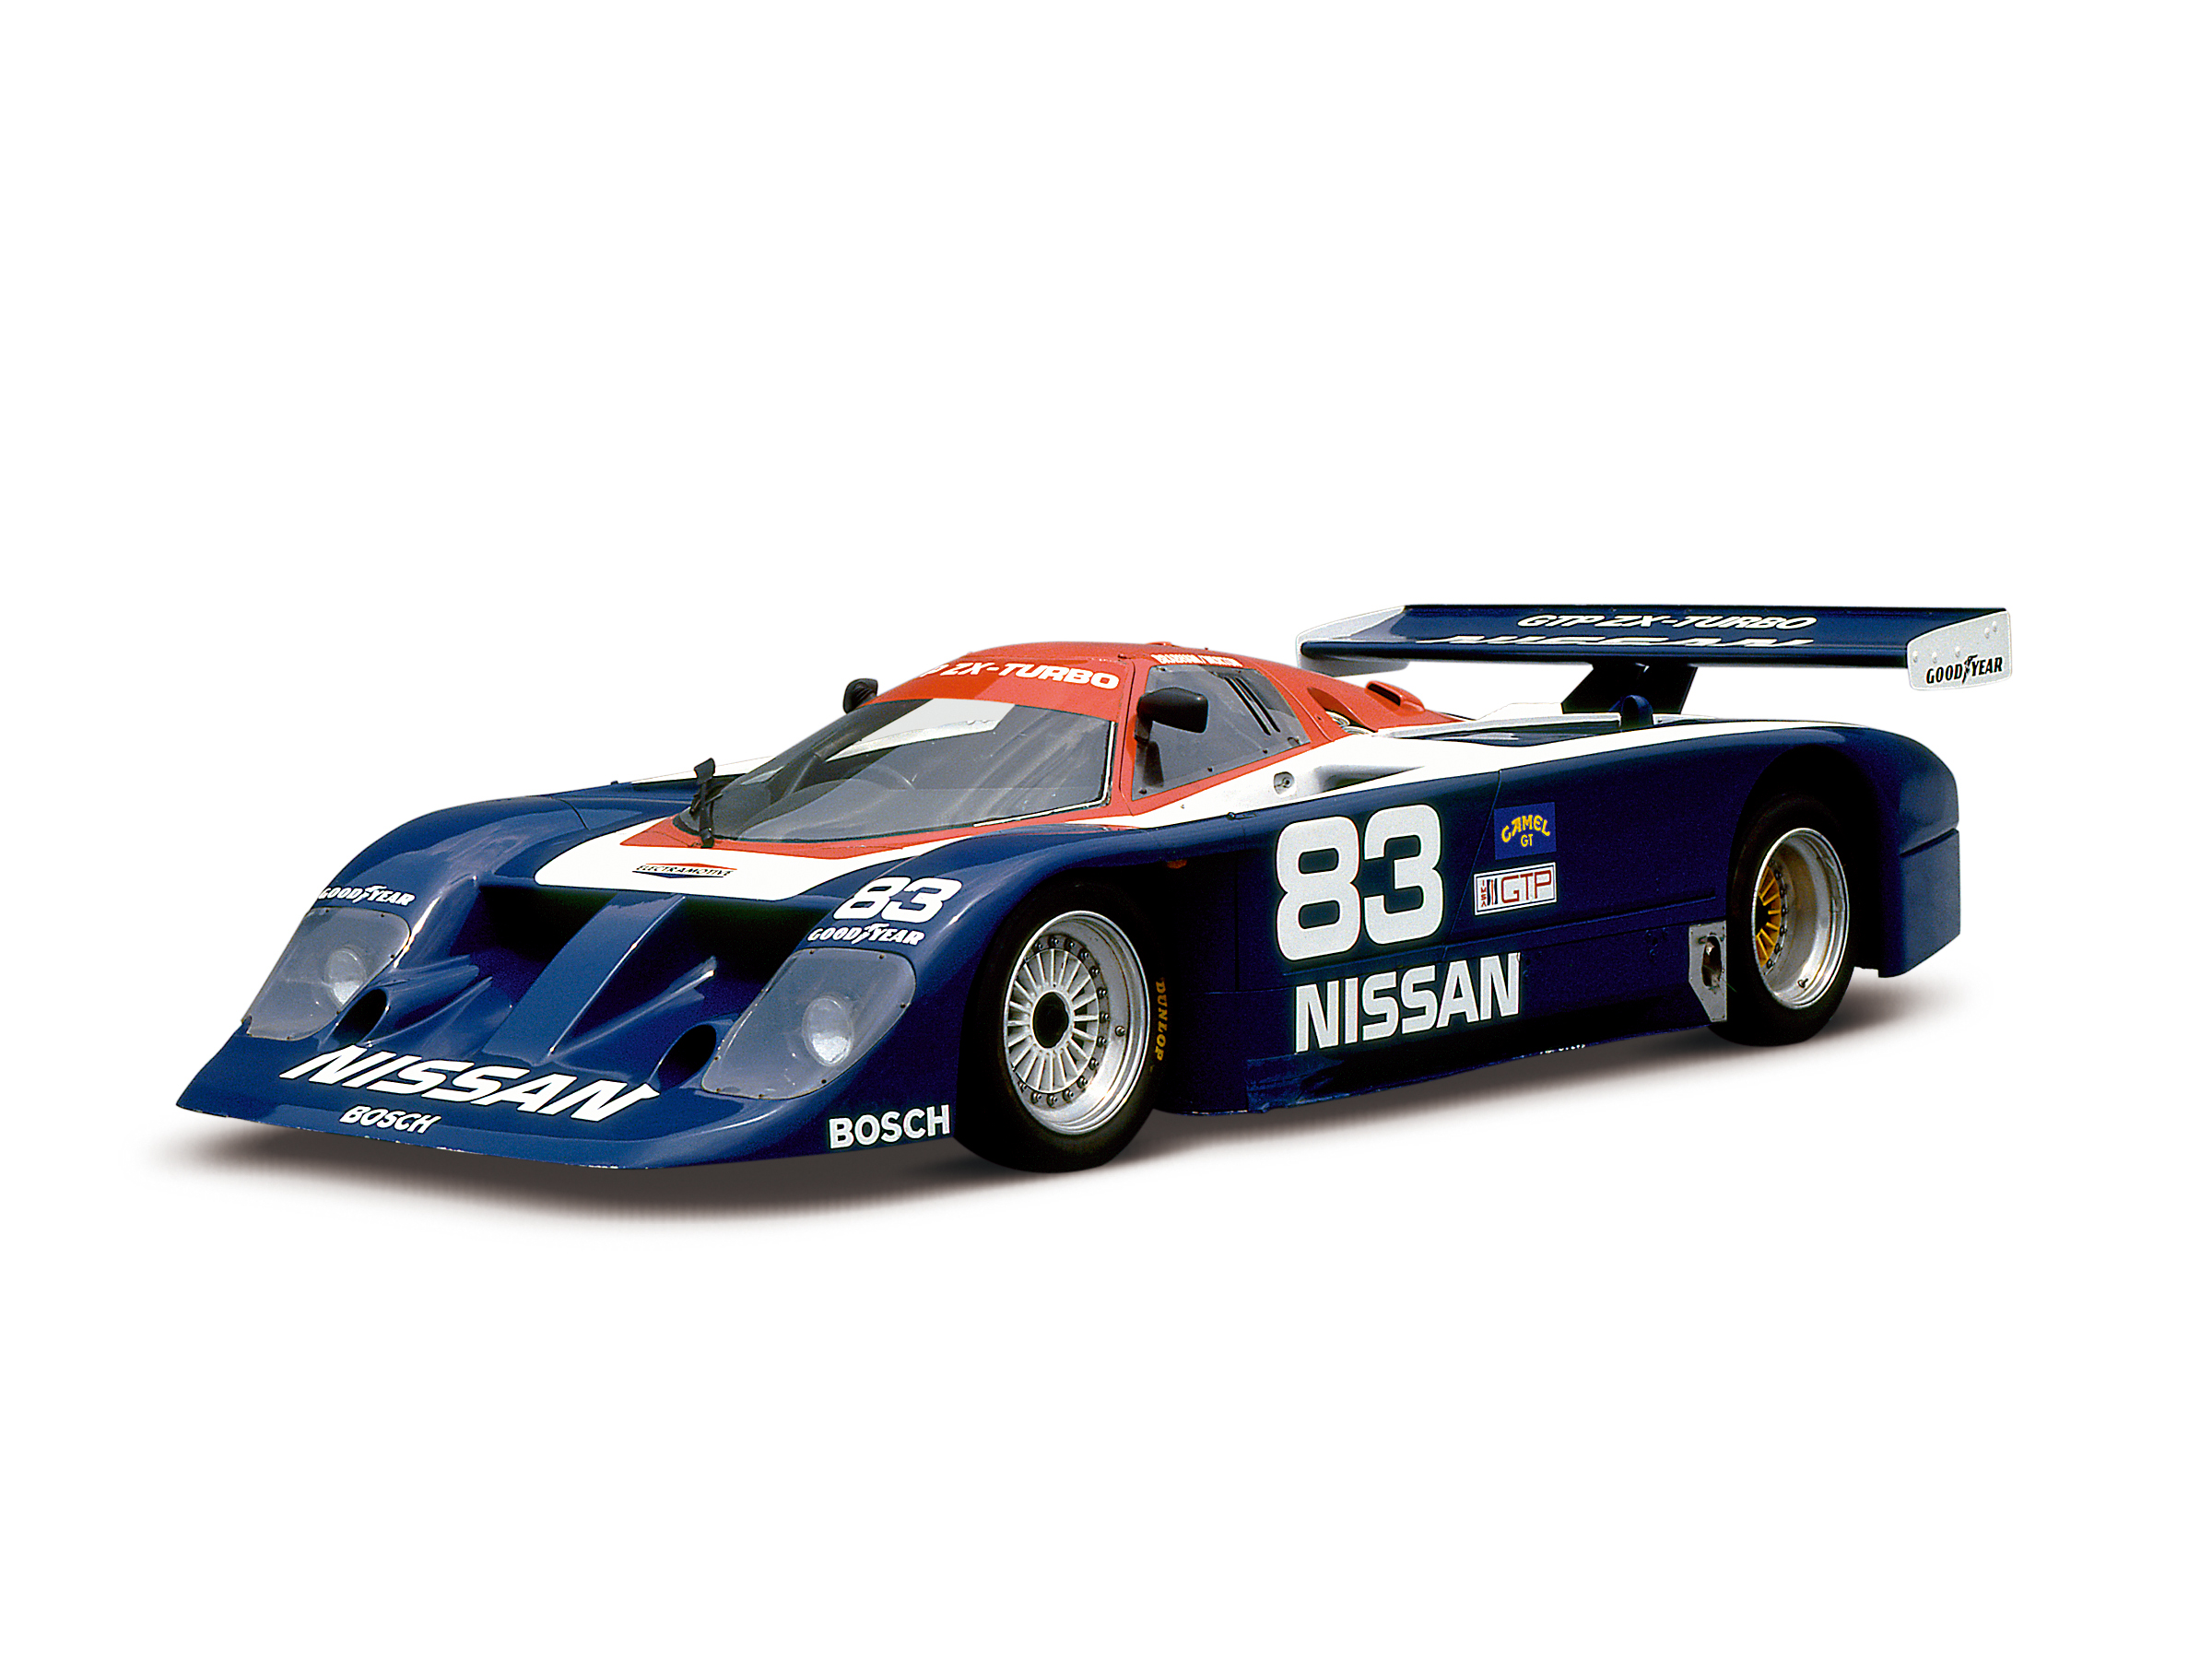 Nissan Heritage Collection Nissan Gtp Zx Turbo